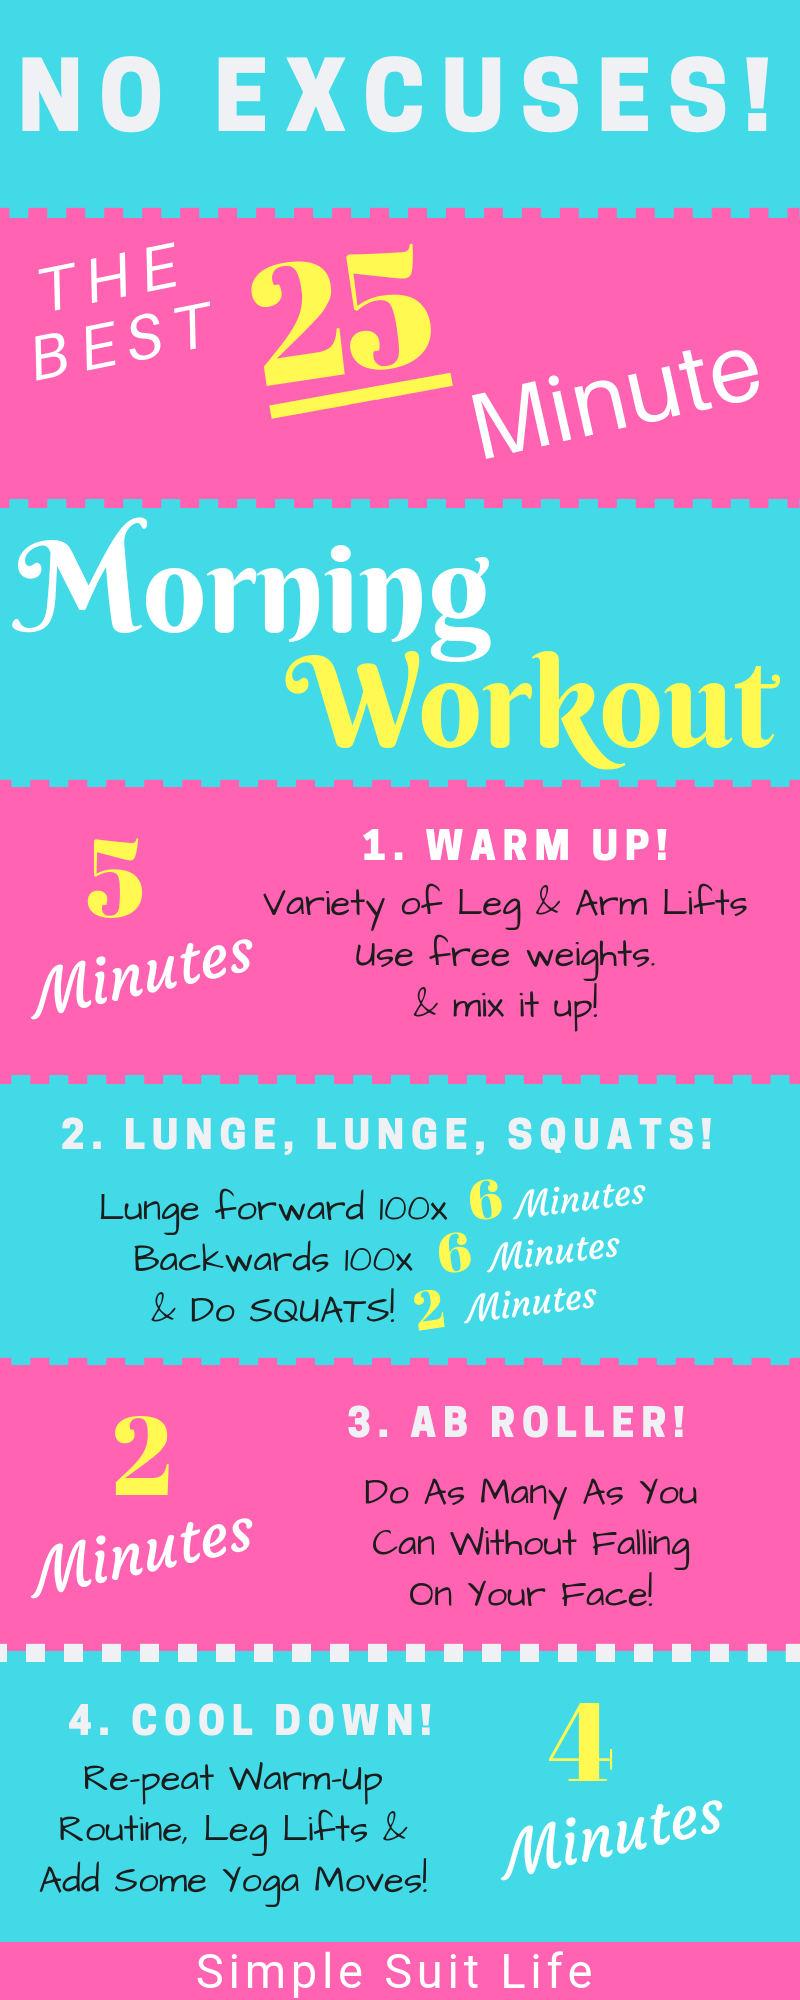 This morning workout routine is the best plan a person should get into! It strengthens your core, back and speeds up your metabolism! This is a must if you have a job where you sit too much! #Fitness #Health #MorningWorkoutRoutine #Lunges